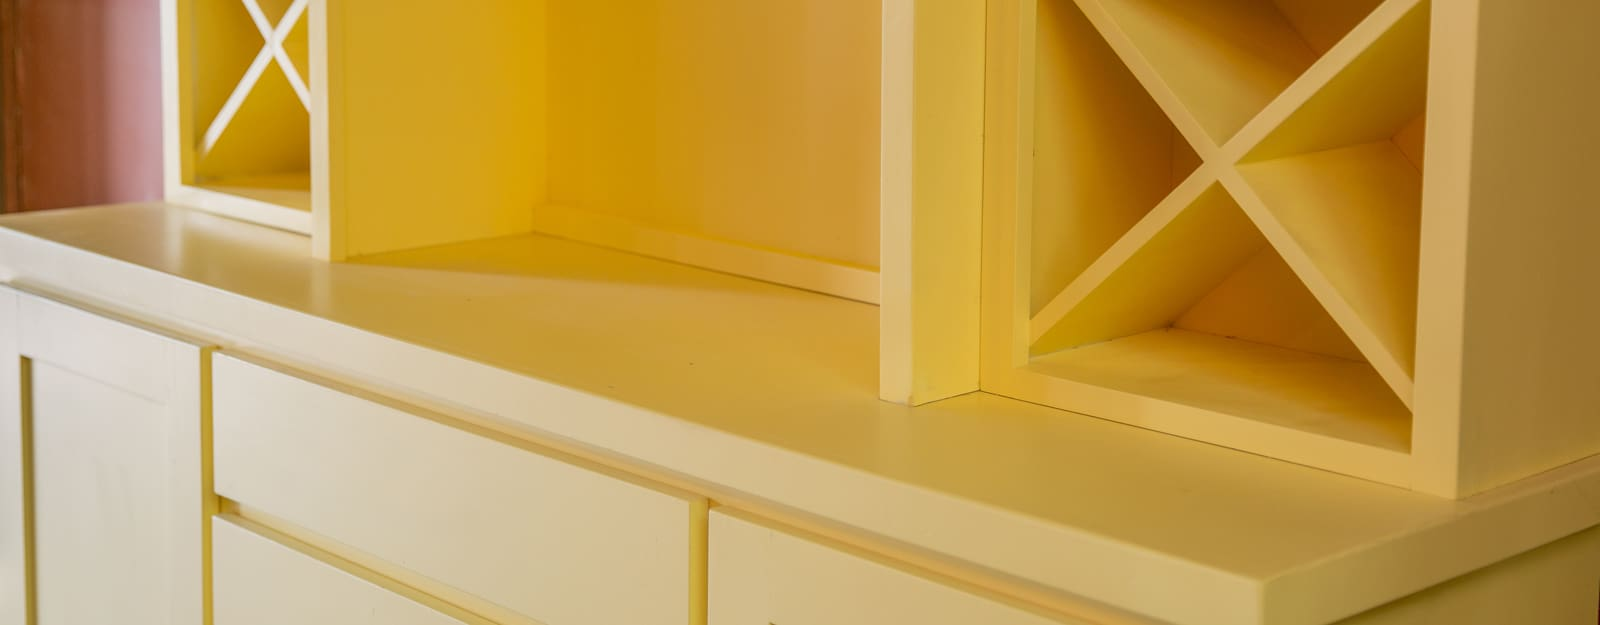 Yellow Cabinet Close